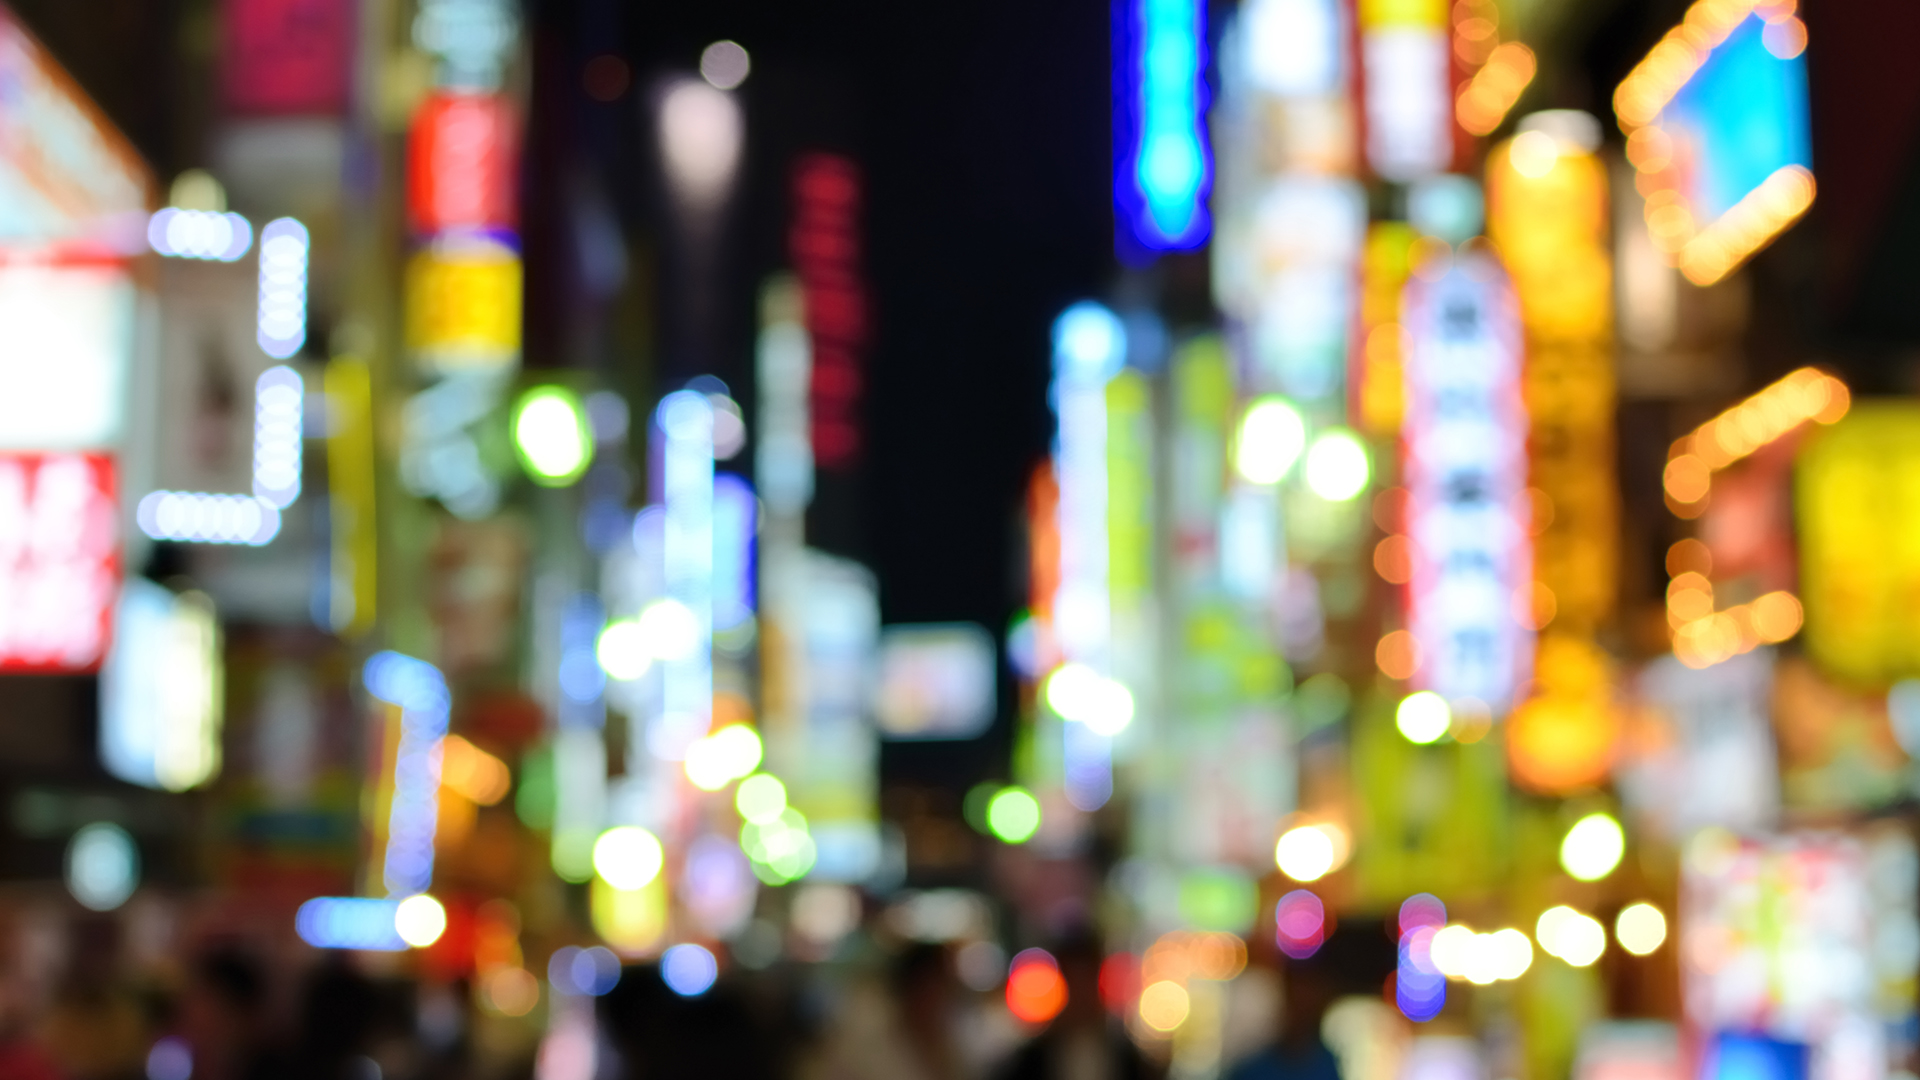 blurred colourful city lights at night time